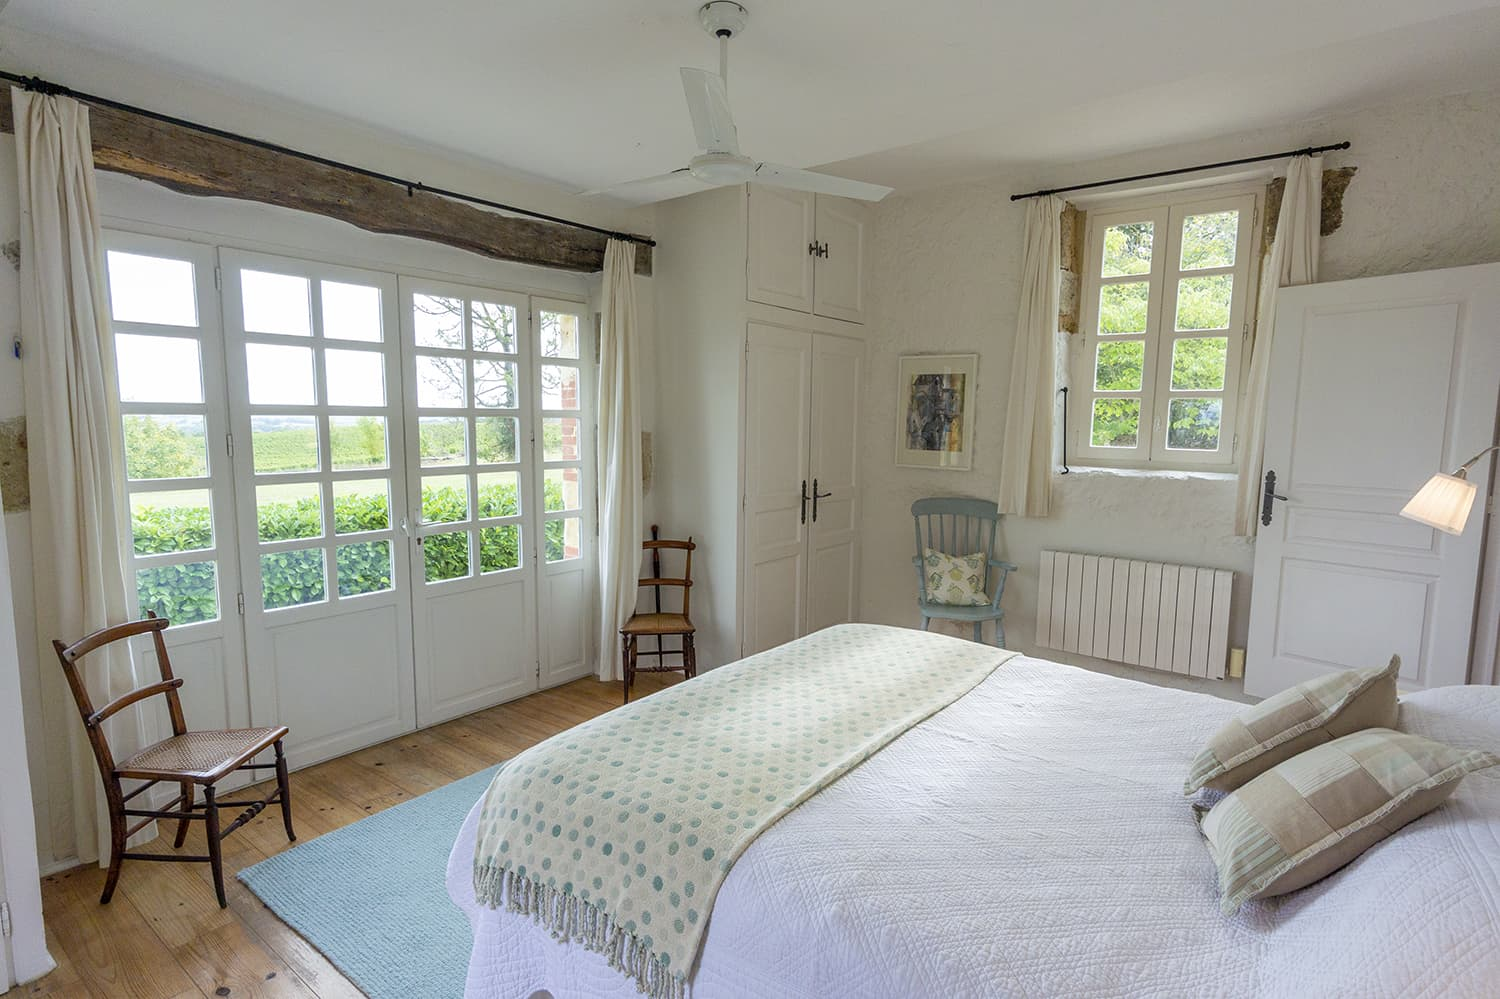 Bedroom in Gers holiday home